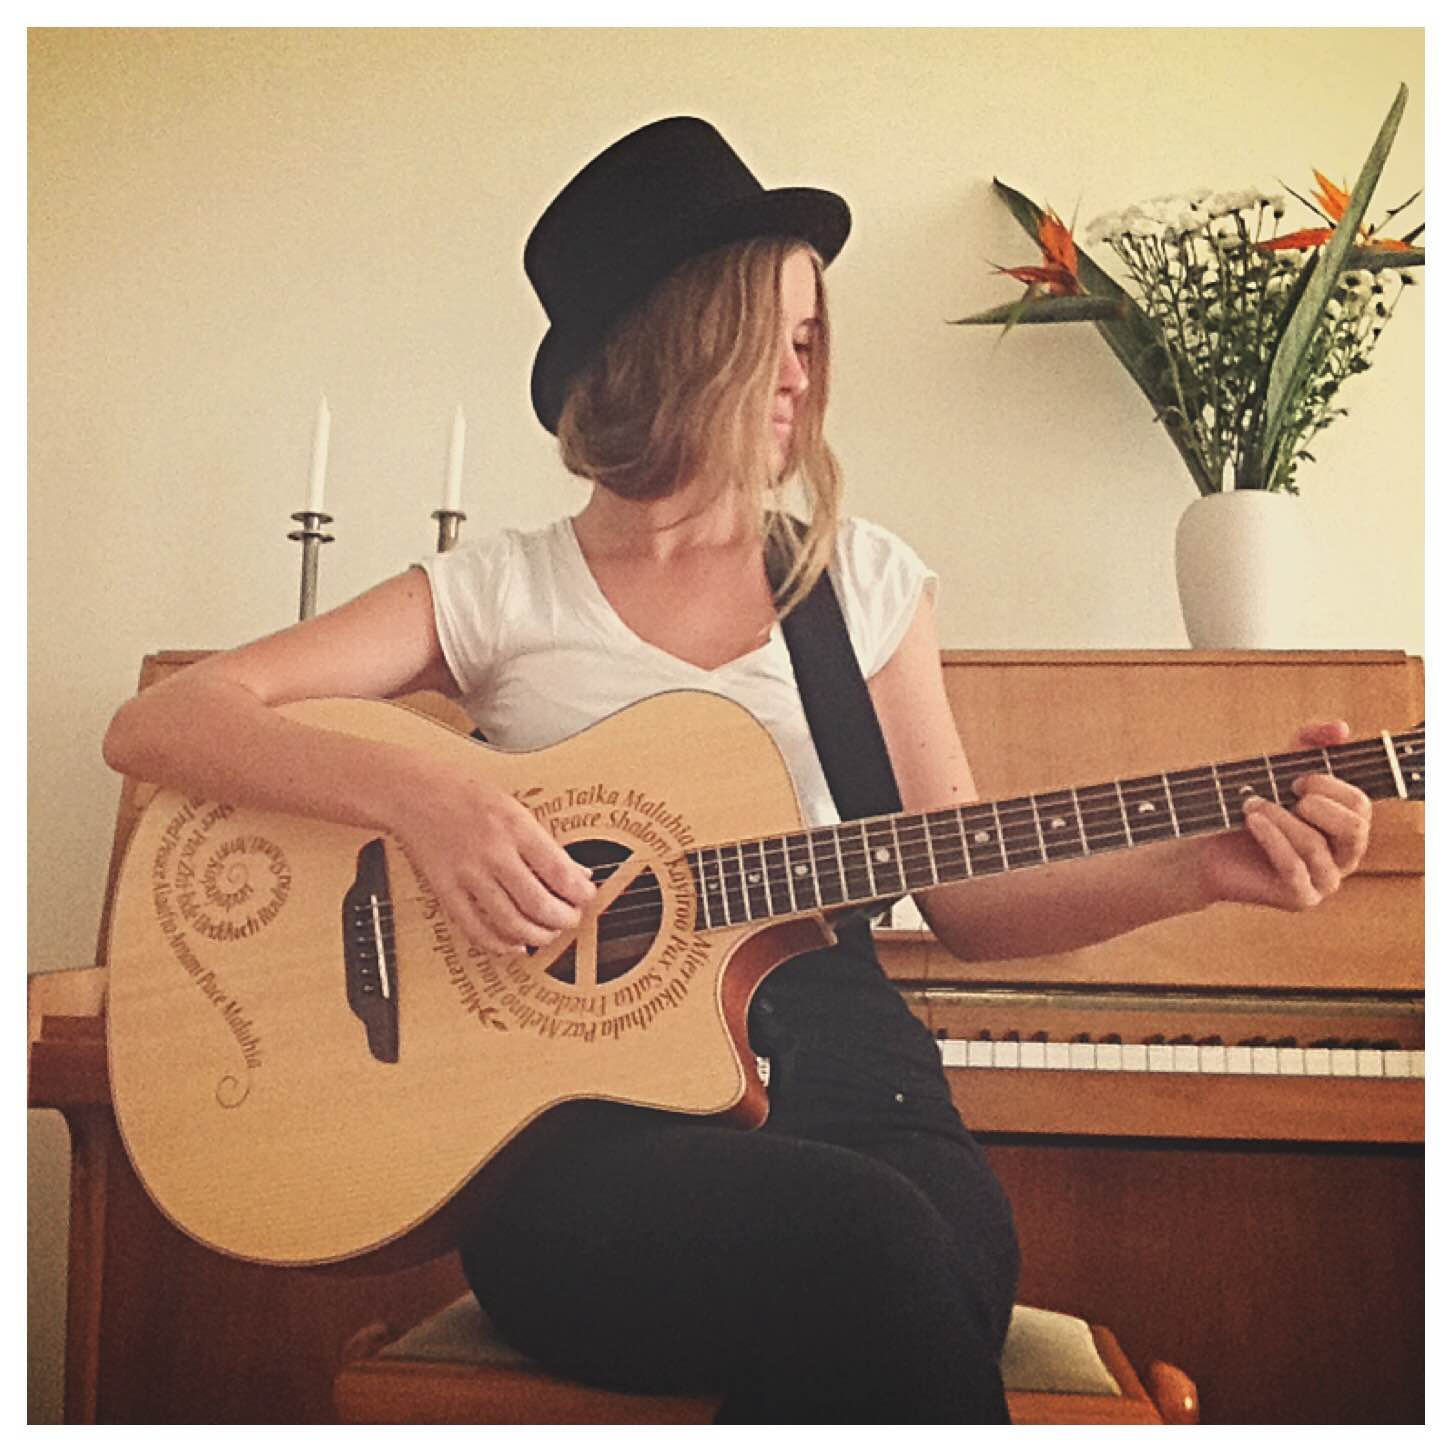 Luna with her favourite guitar